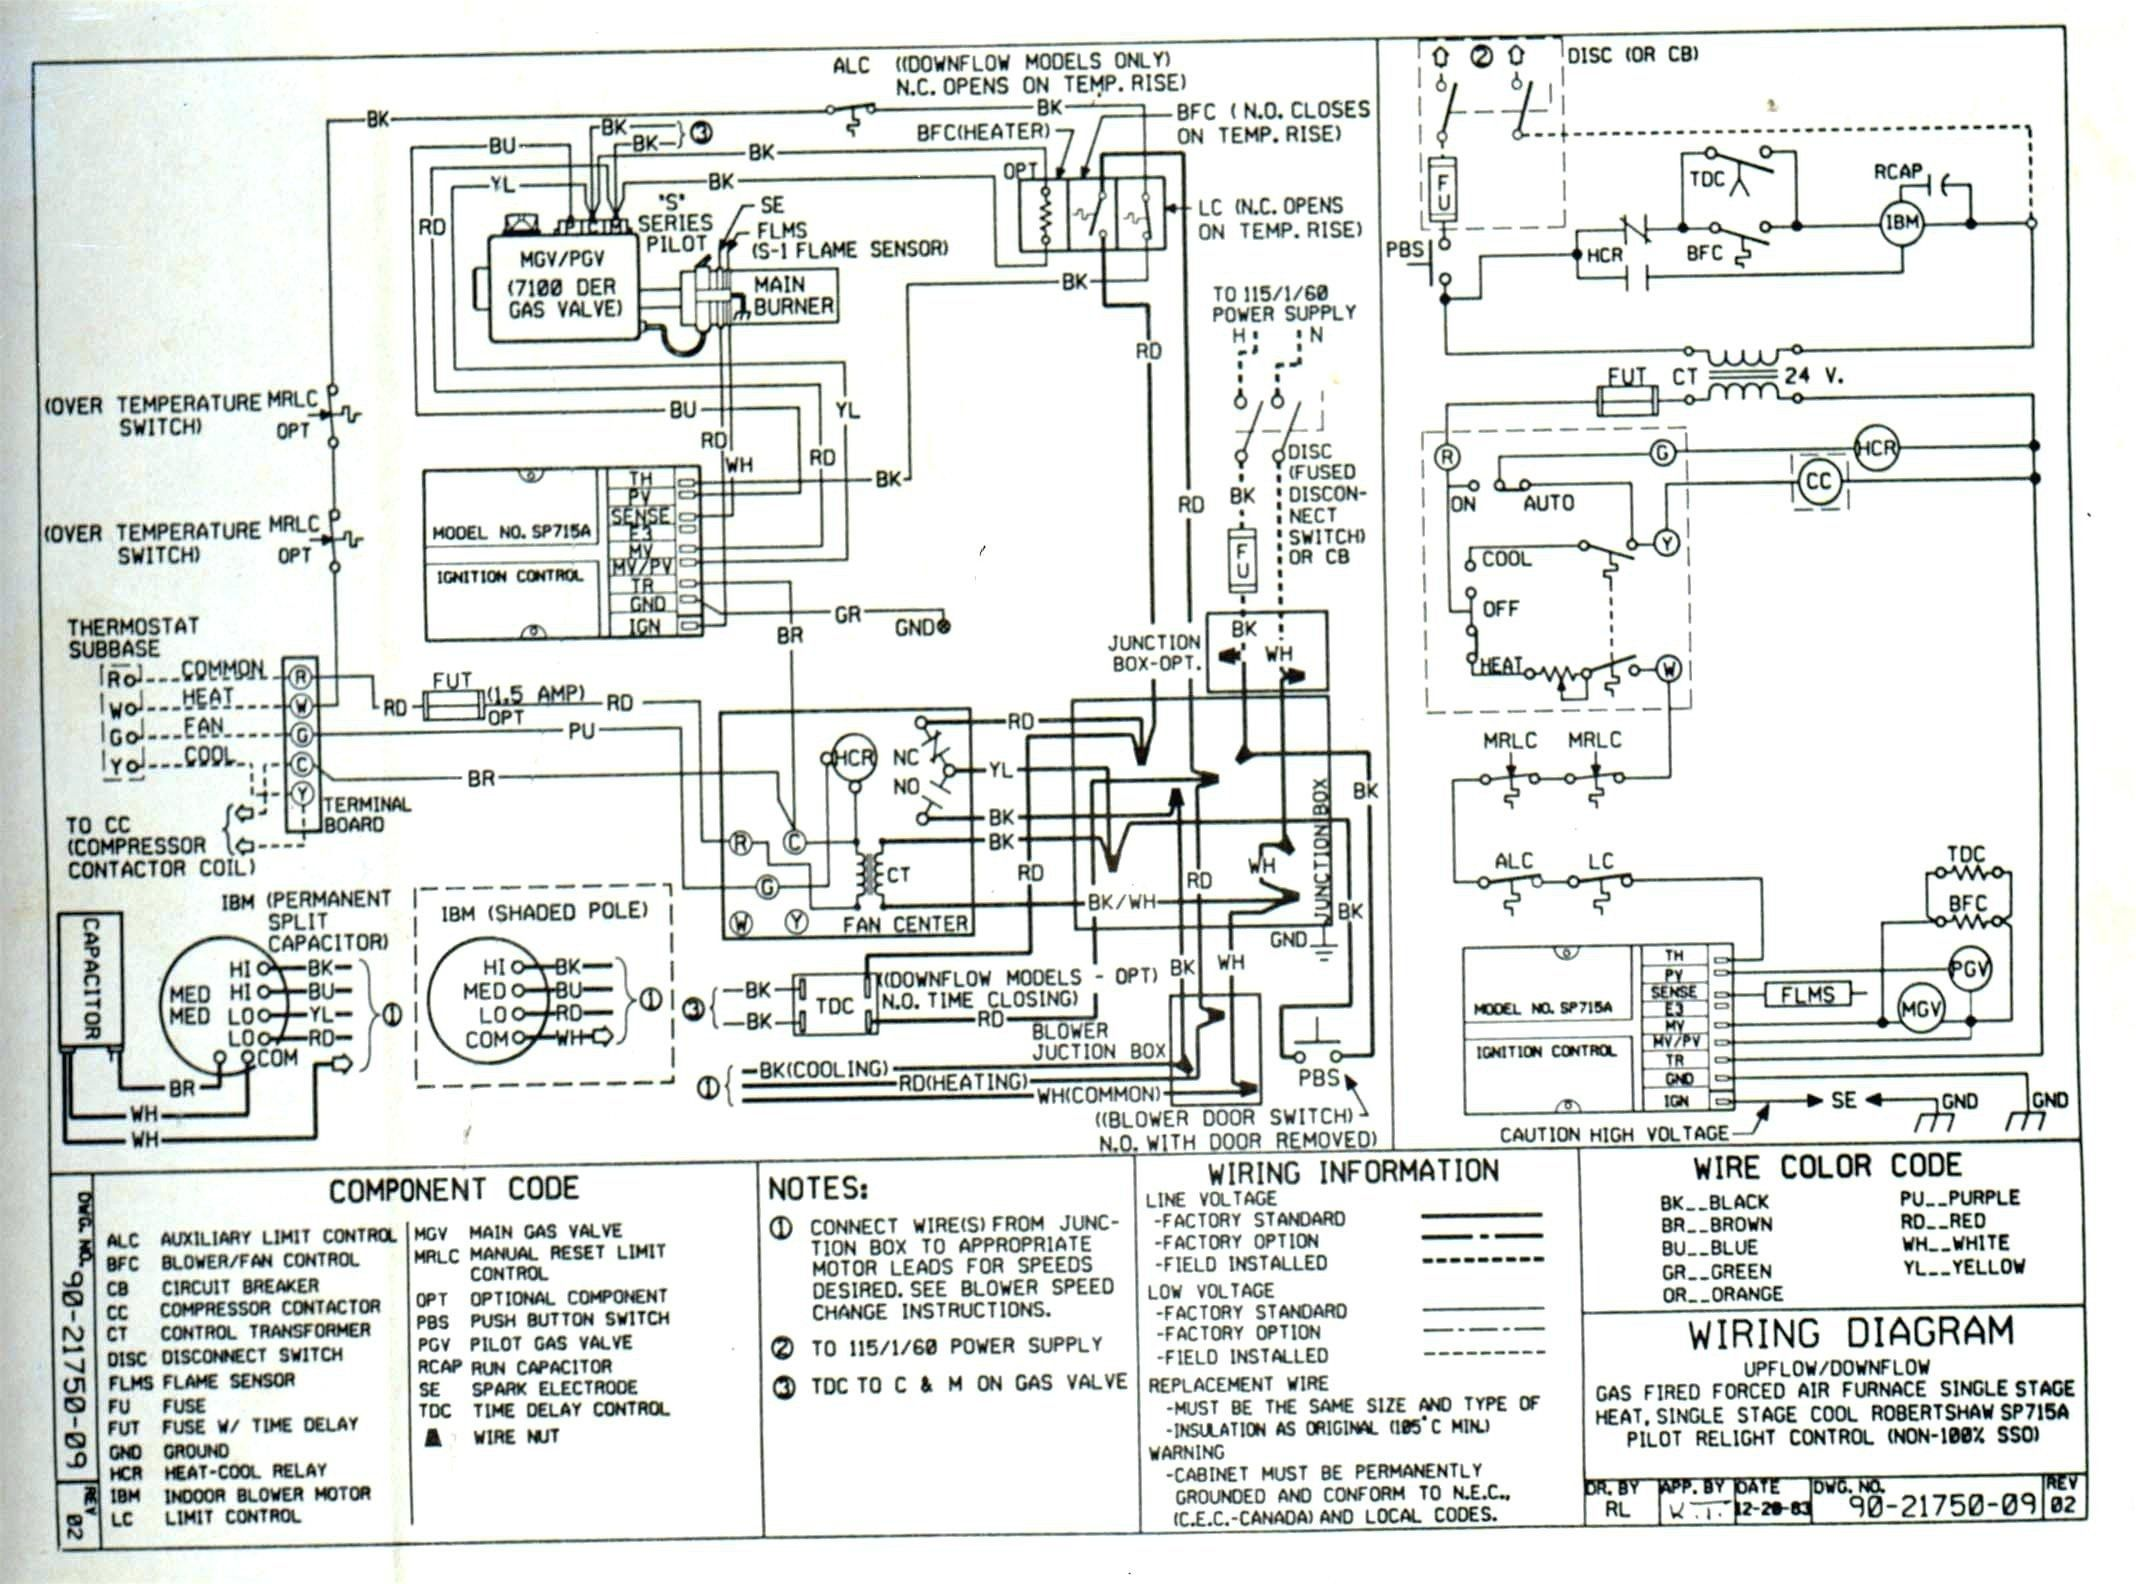 trane bwv724a100d1 air handler wiring diagram simple wiring diagrams trane twe air handler wiring diagram trane bwv724a100d1 air handler wiring diagram [ 2136 x 1584 Pixel ]